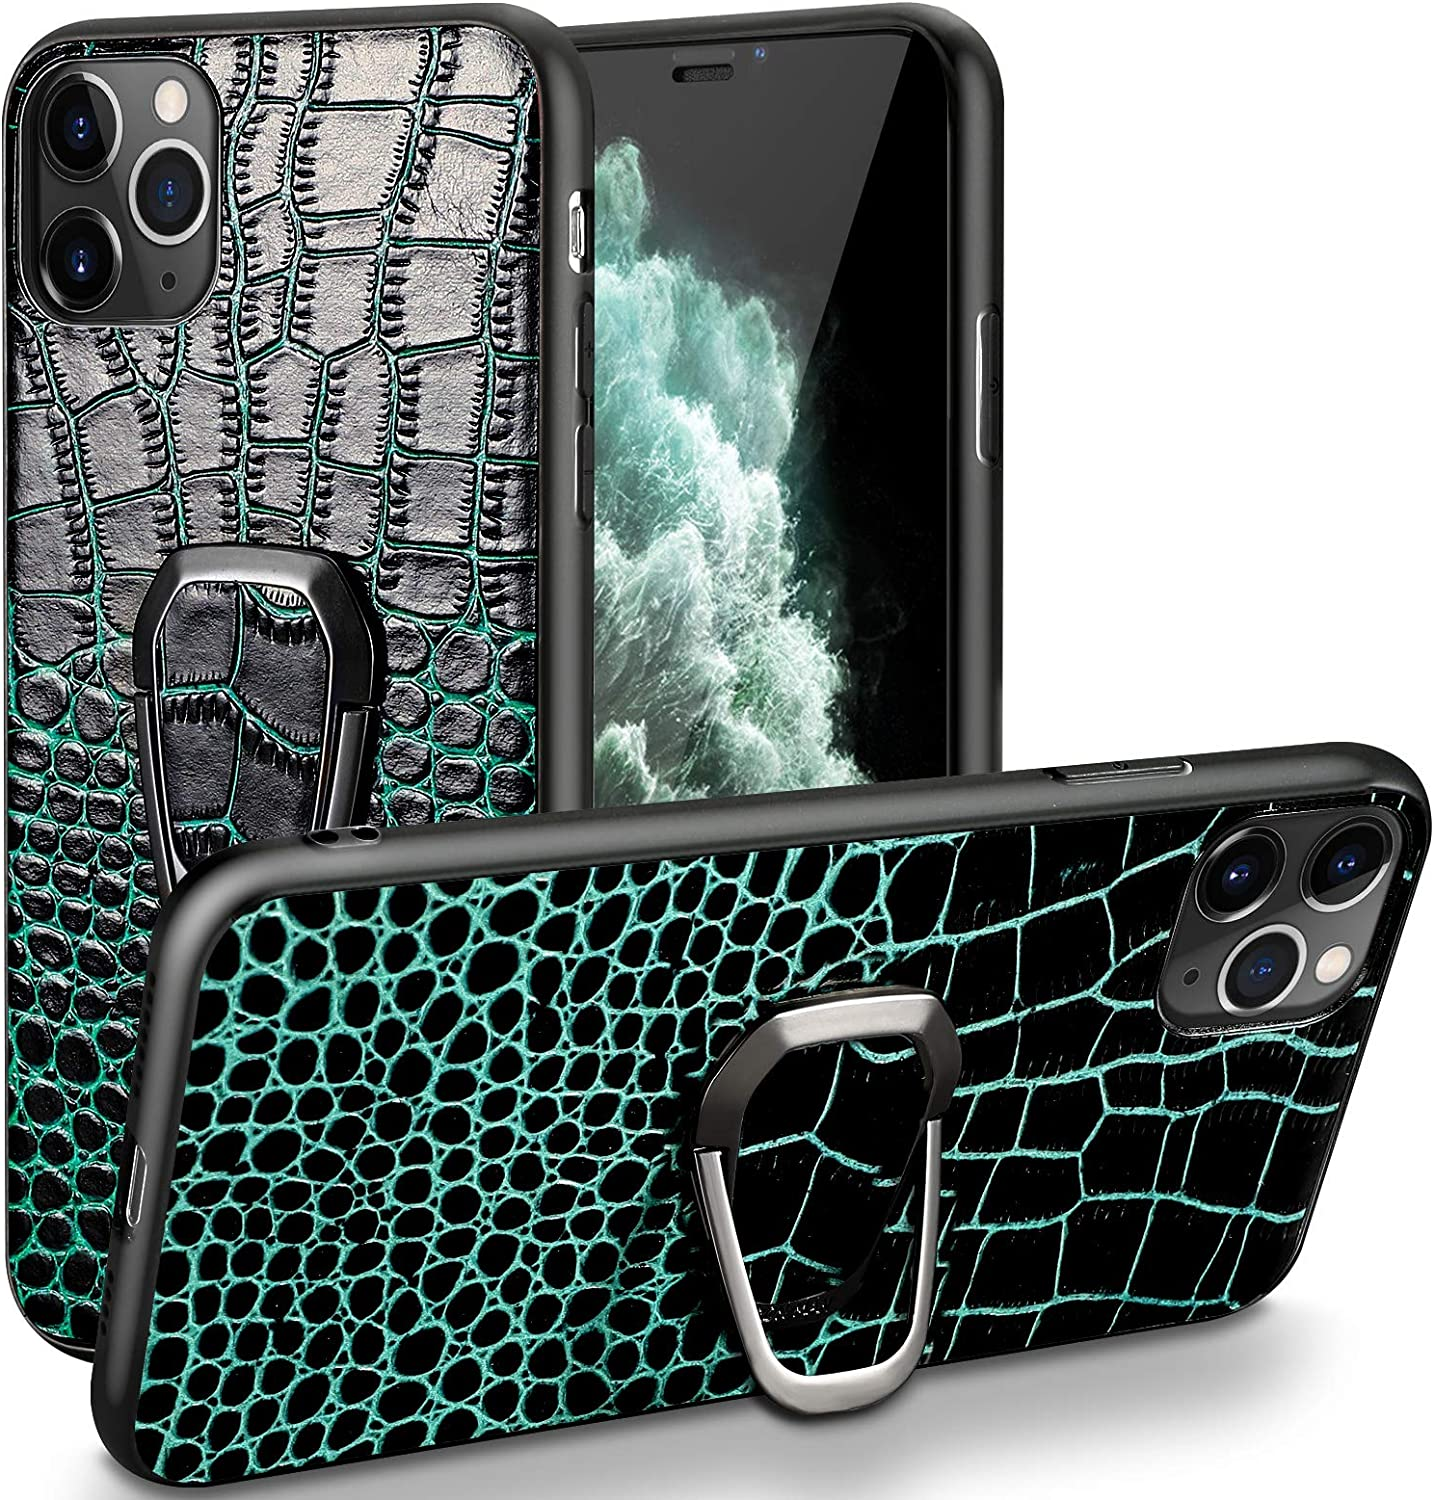 iPhone 11 Pro max Leather Case with Stand,Real Cowhide Crocodile Pattern Mobile Phone case